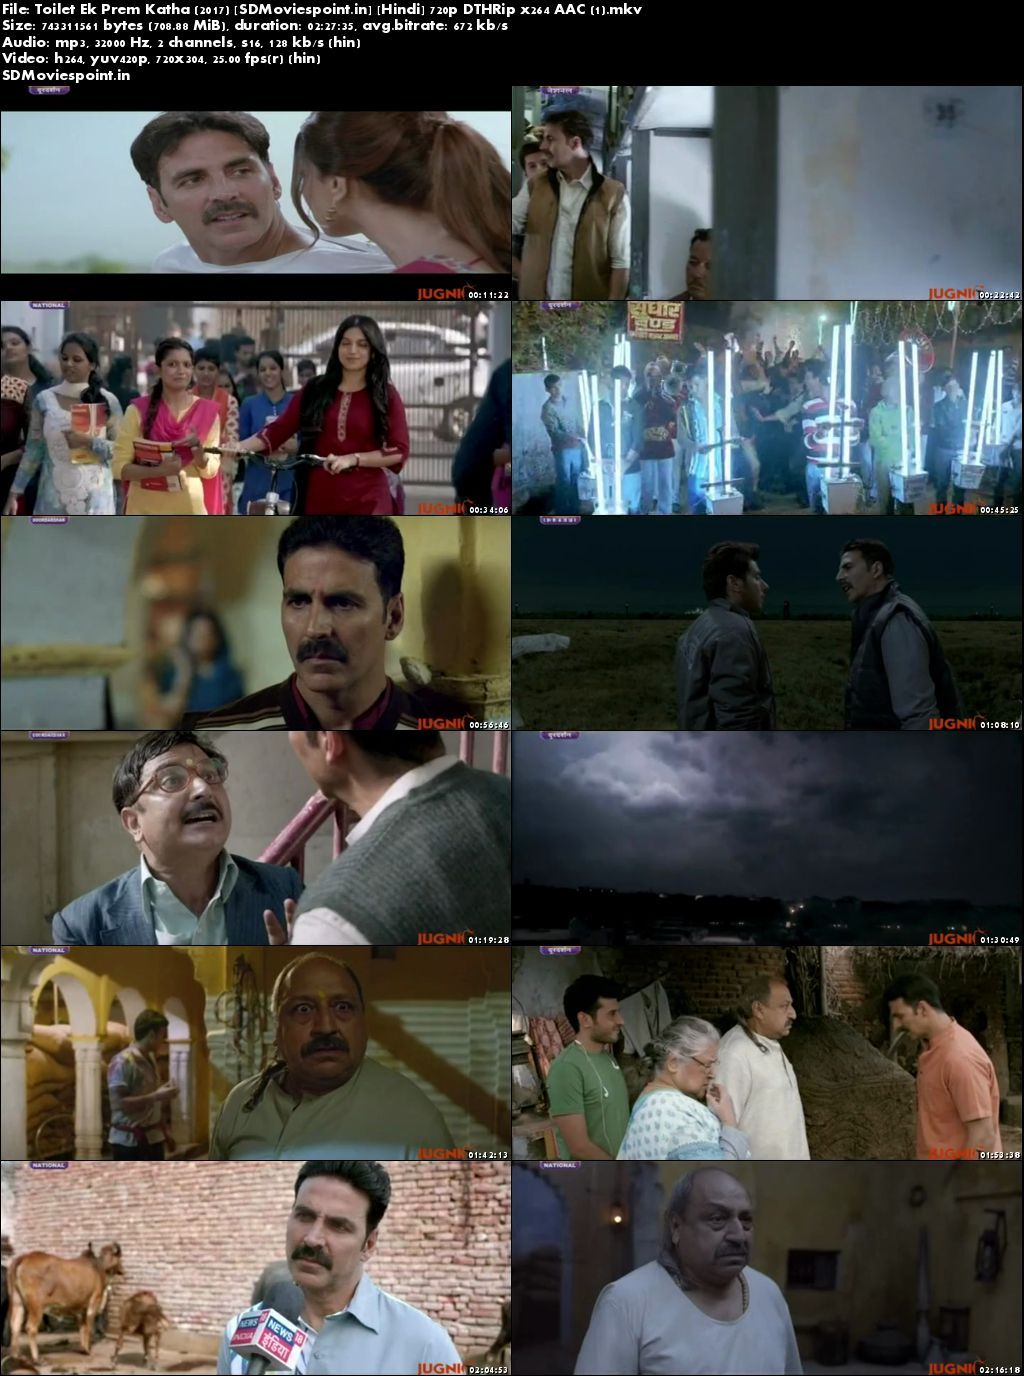 Screen Shots Toilet Ek Prem Katha (2017) Full HD Movie Download Free